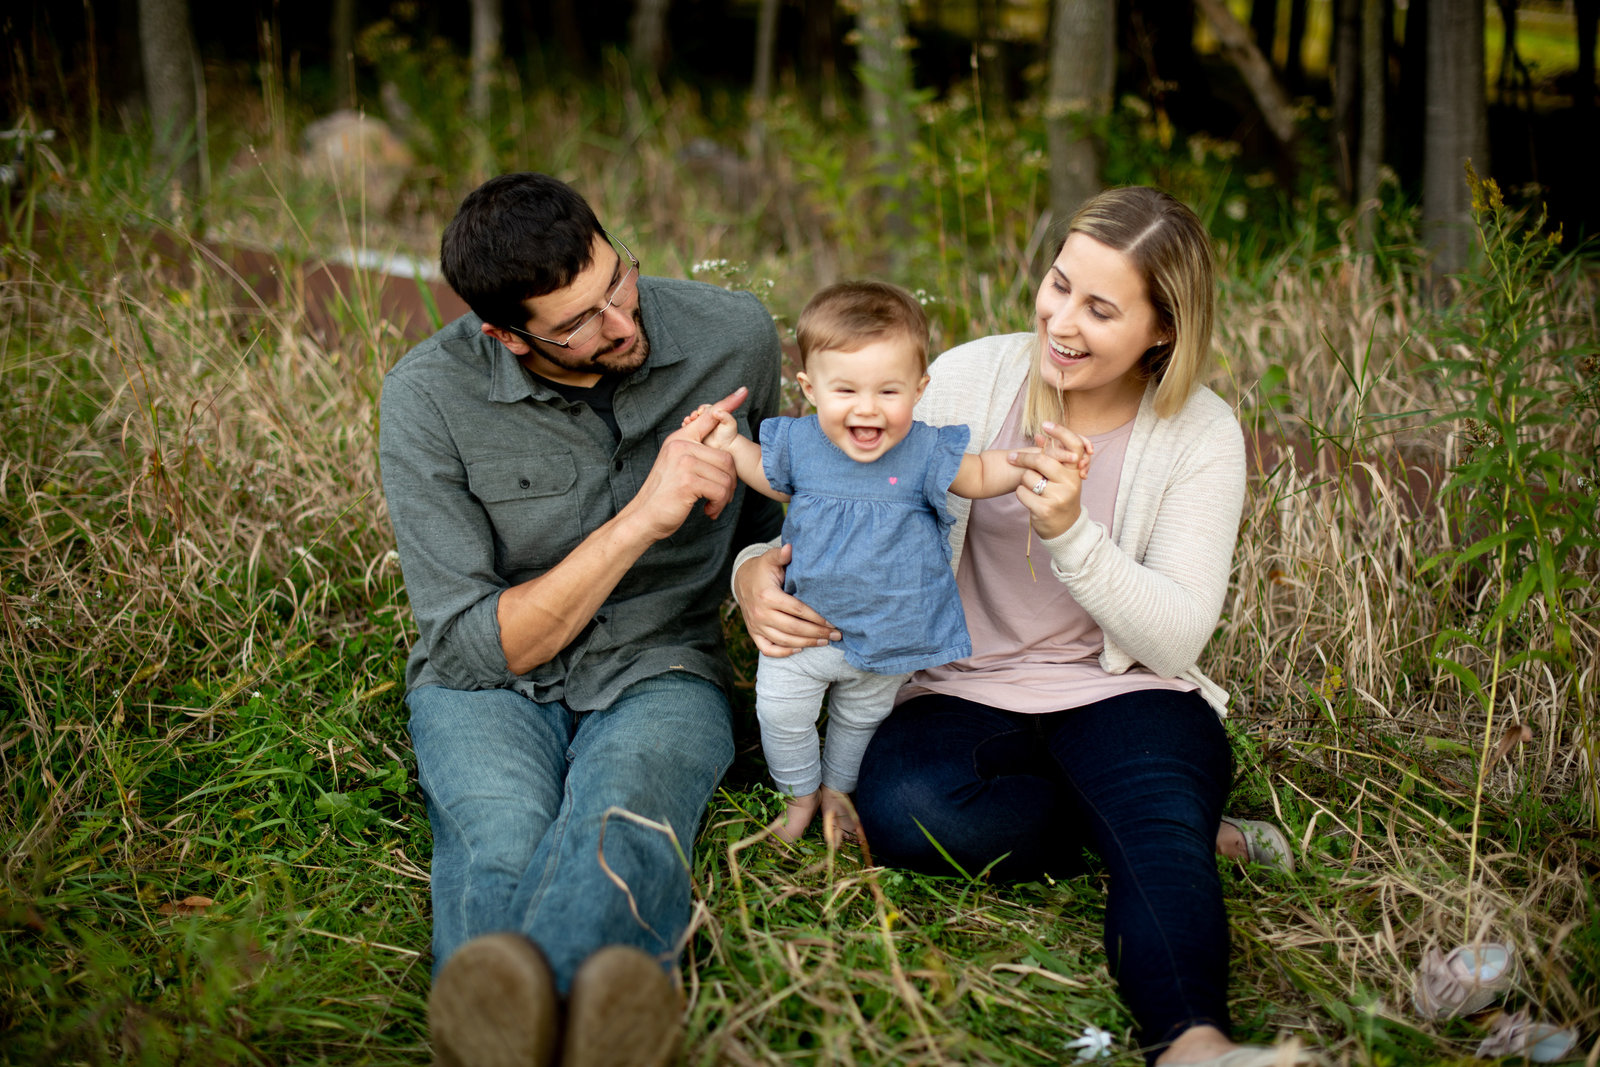 Newborn Photography, Newborn, Family, Young Family, Child, Happy Family, Family Photography, Family Photographer